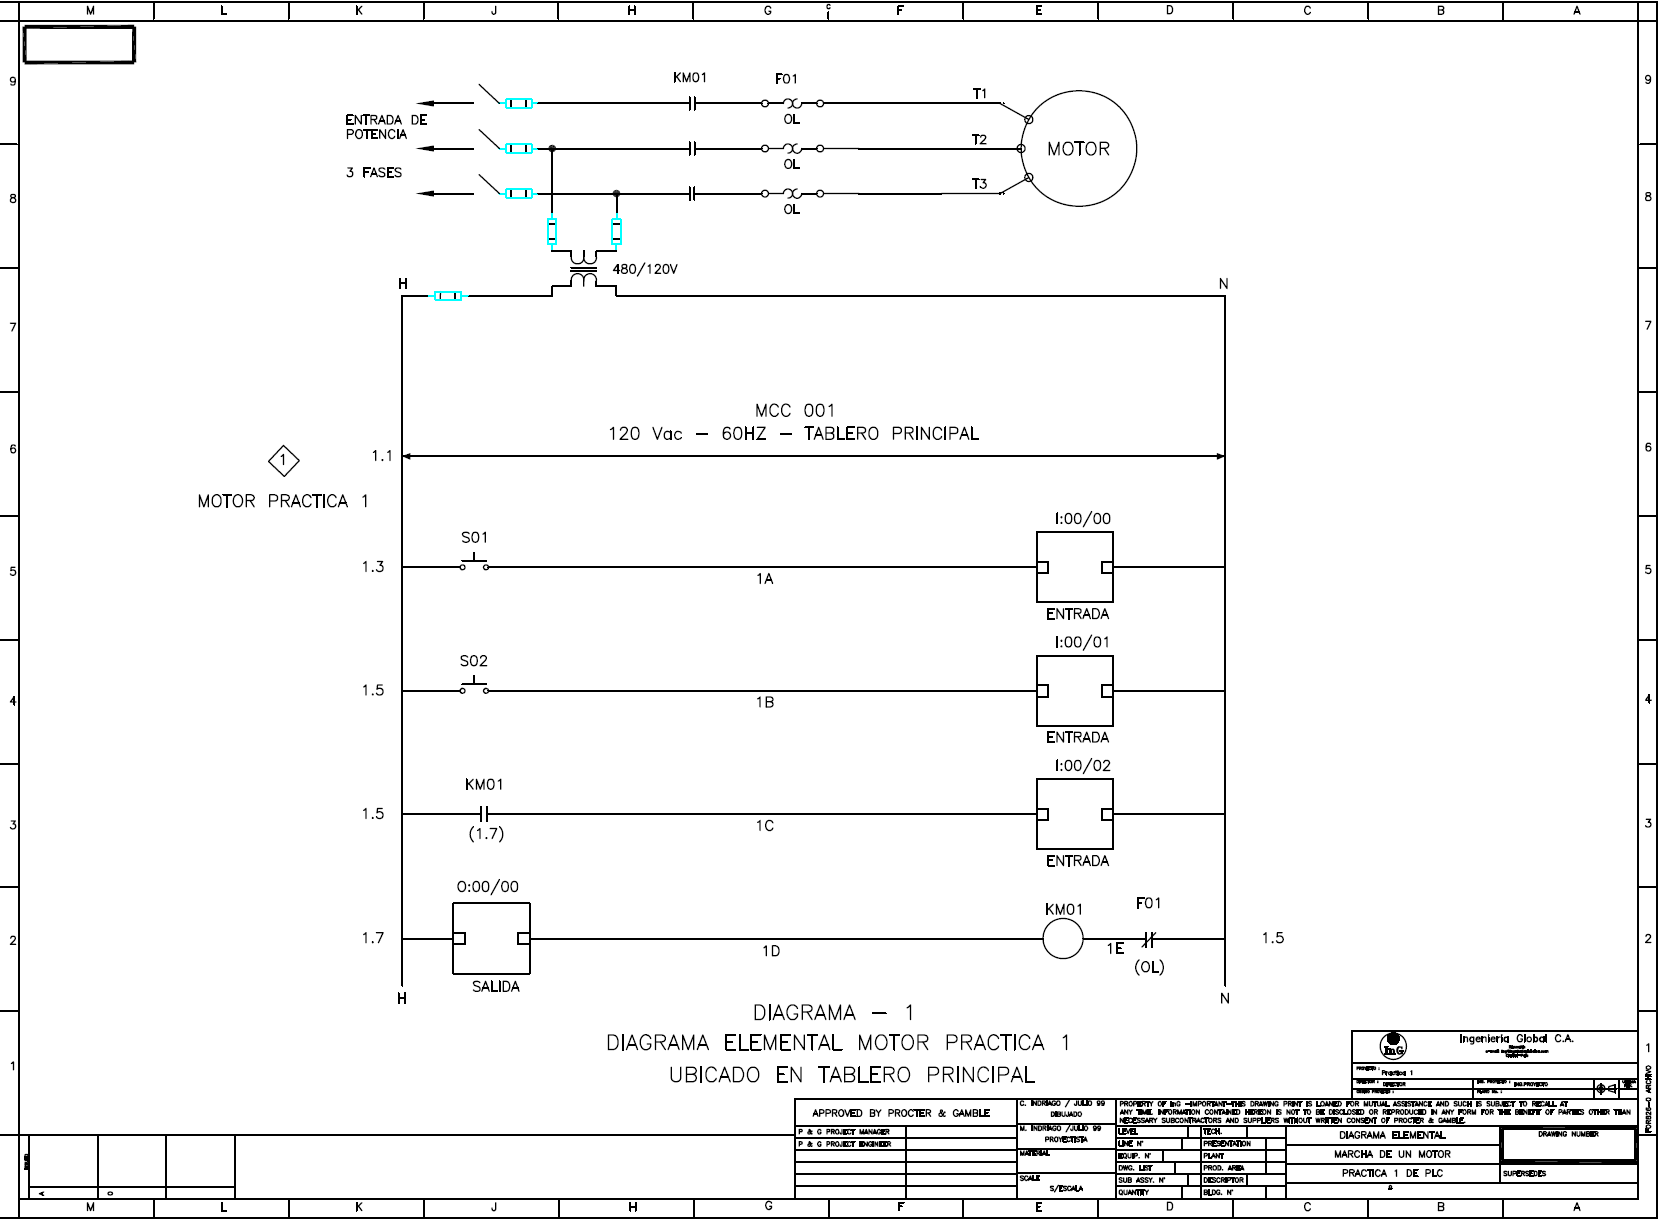 Electrical Drawings Control Real English Din Wiring Diagram Symbols American Standard Ansi